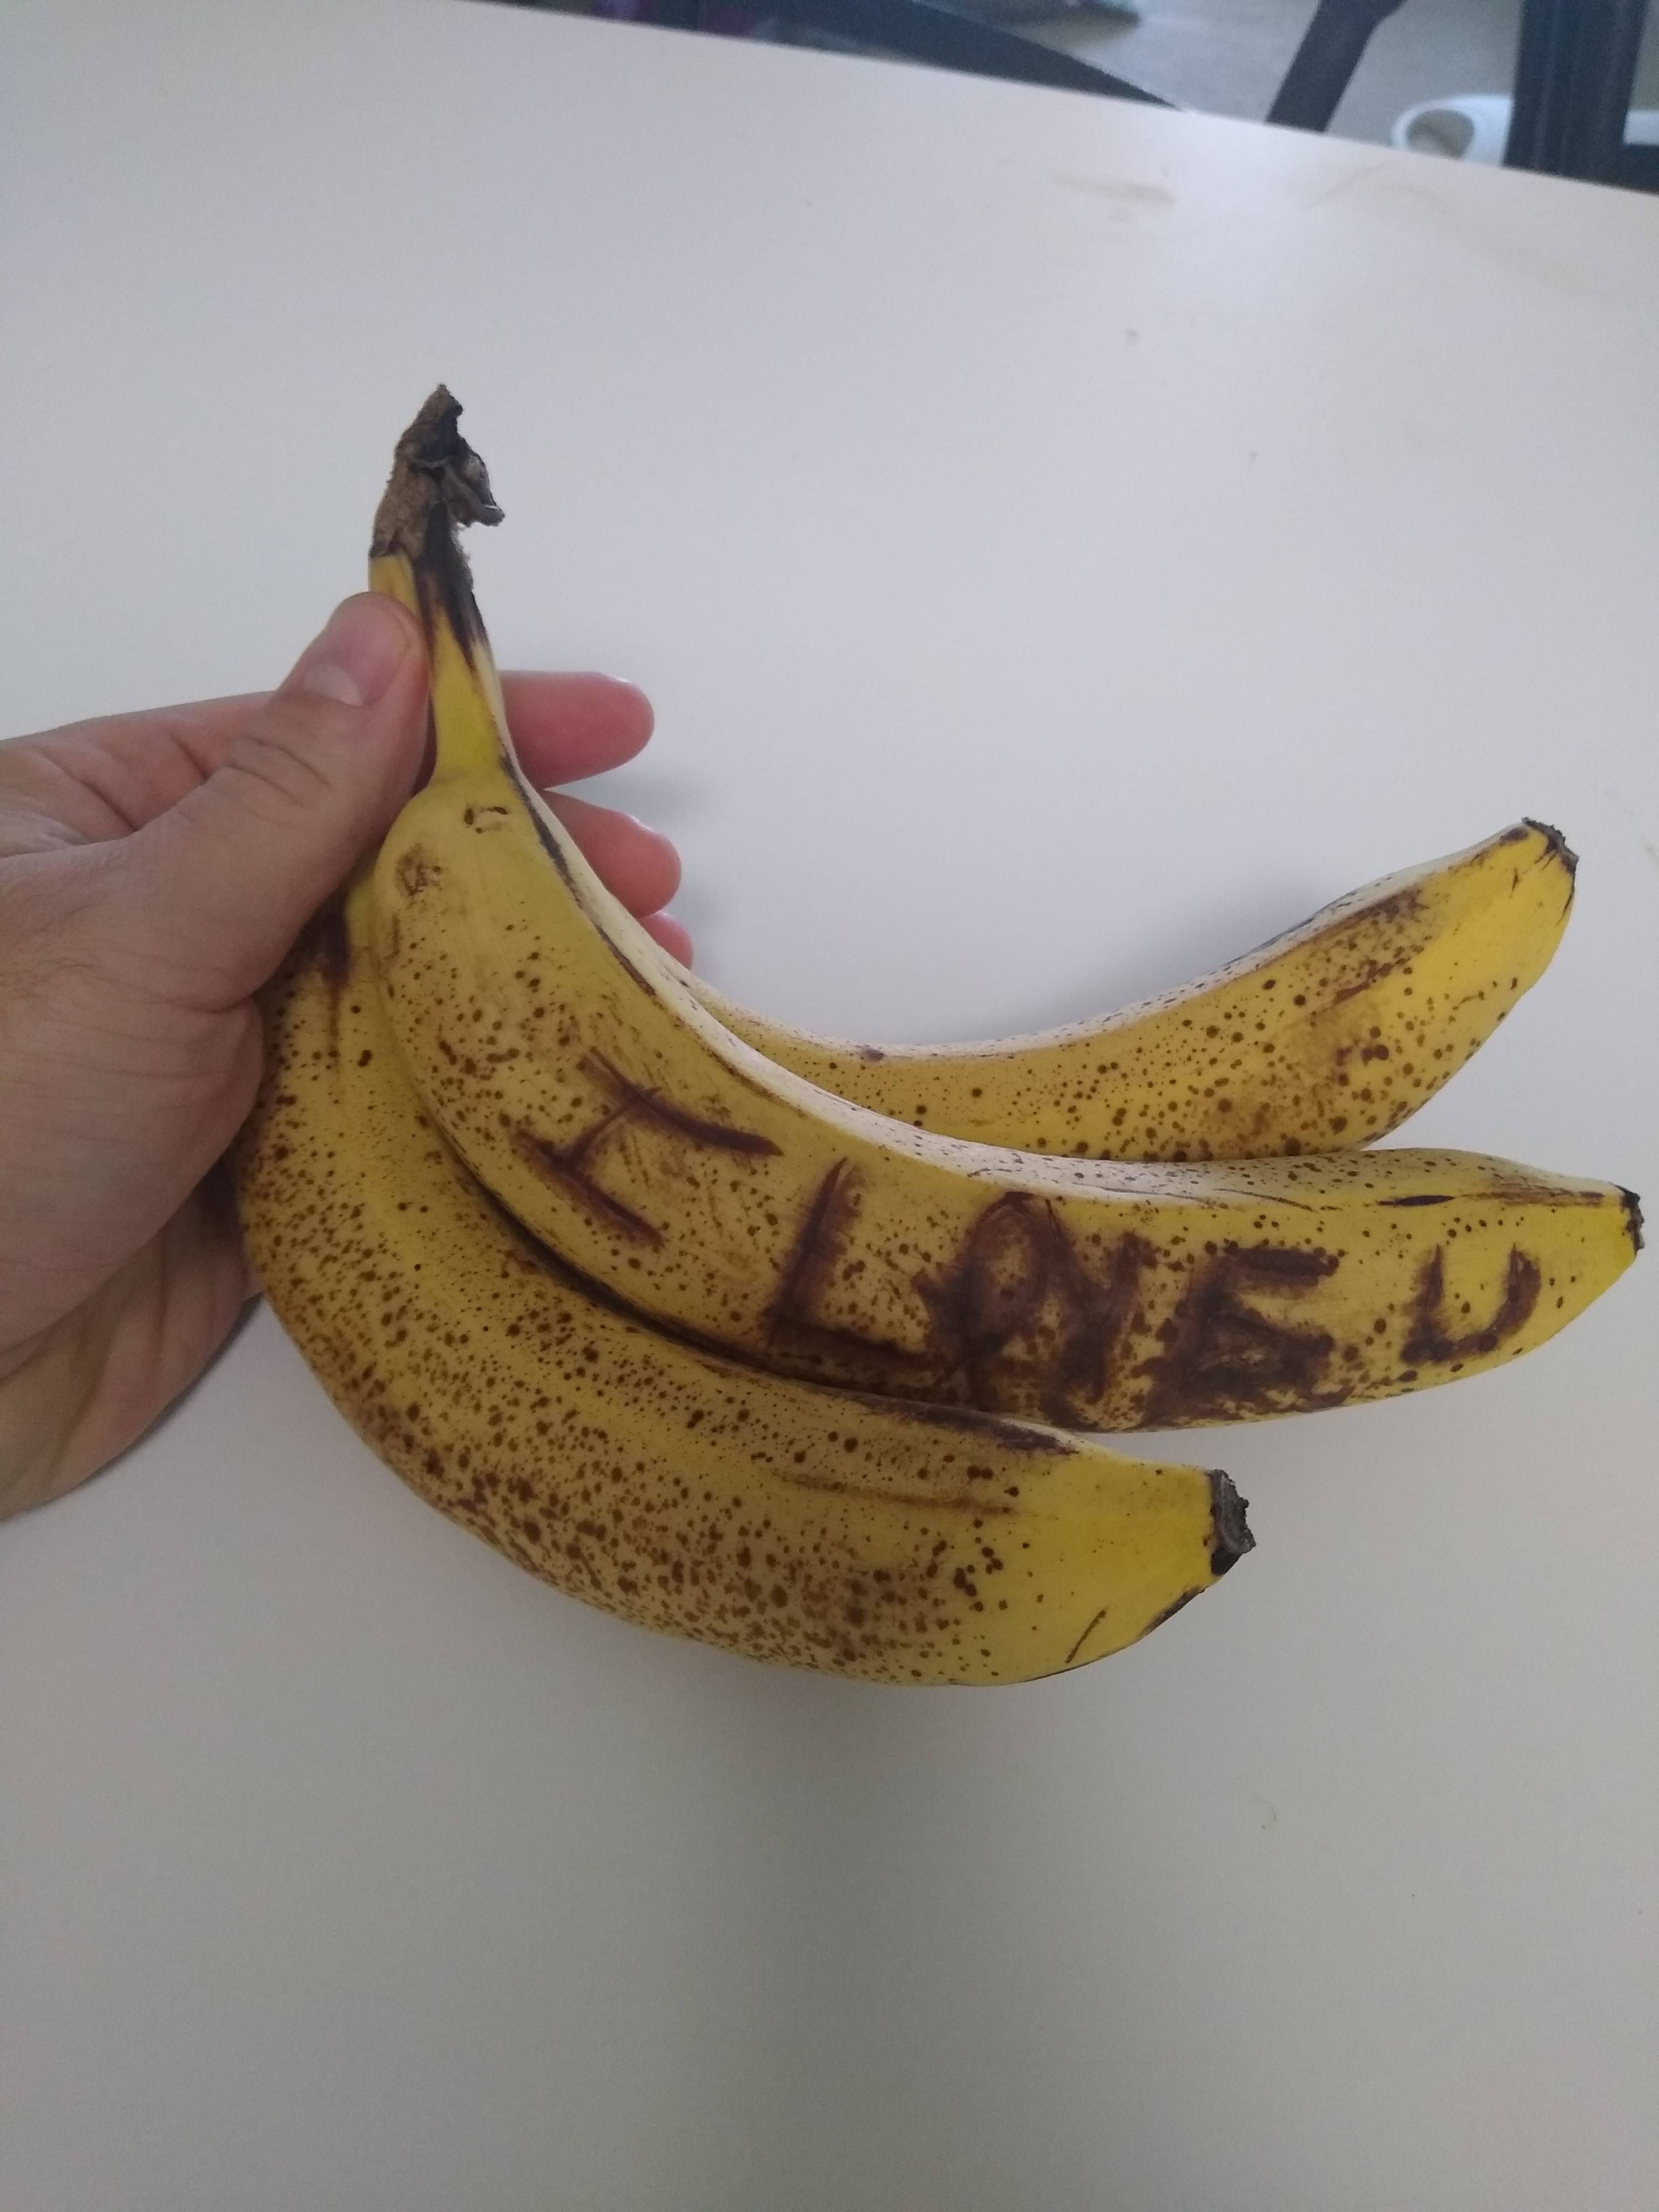 """I tried to be cute and carved """"I love u"""" into my wife's banana last night and this morning, it looked like a note from a stalker. 0/10 Will not do again."""